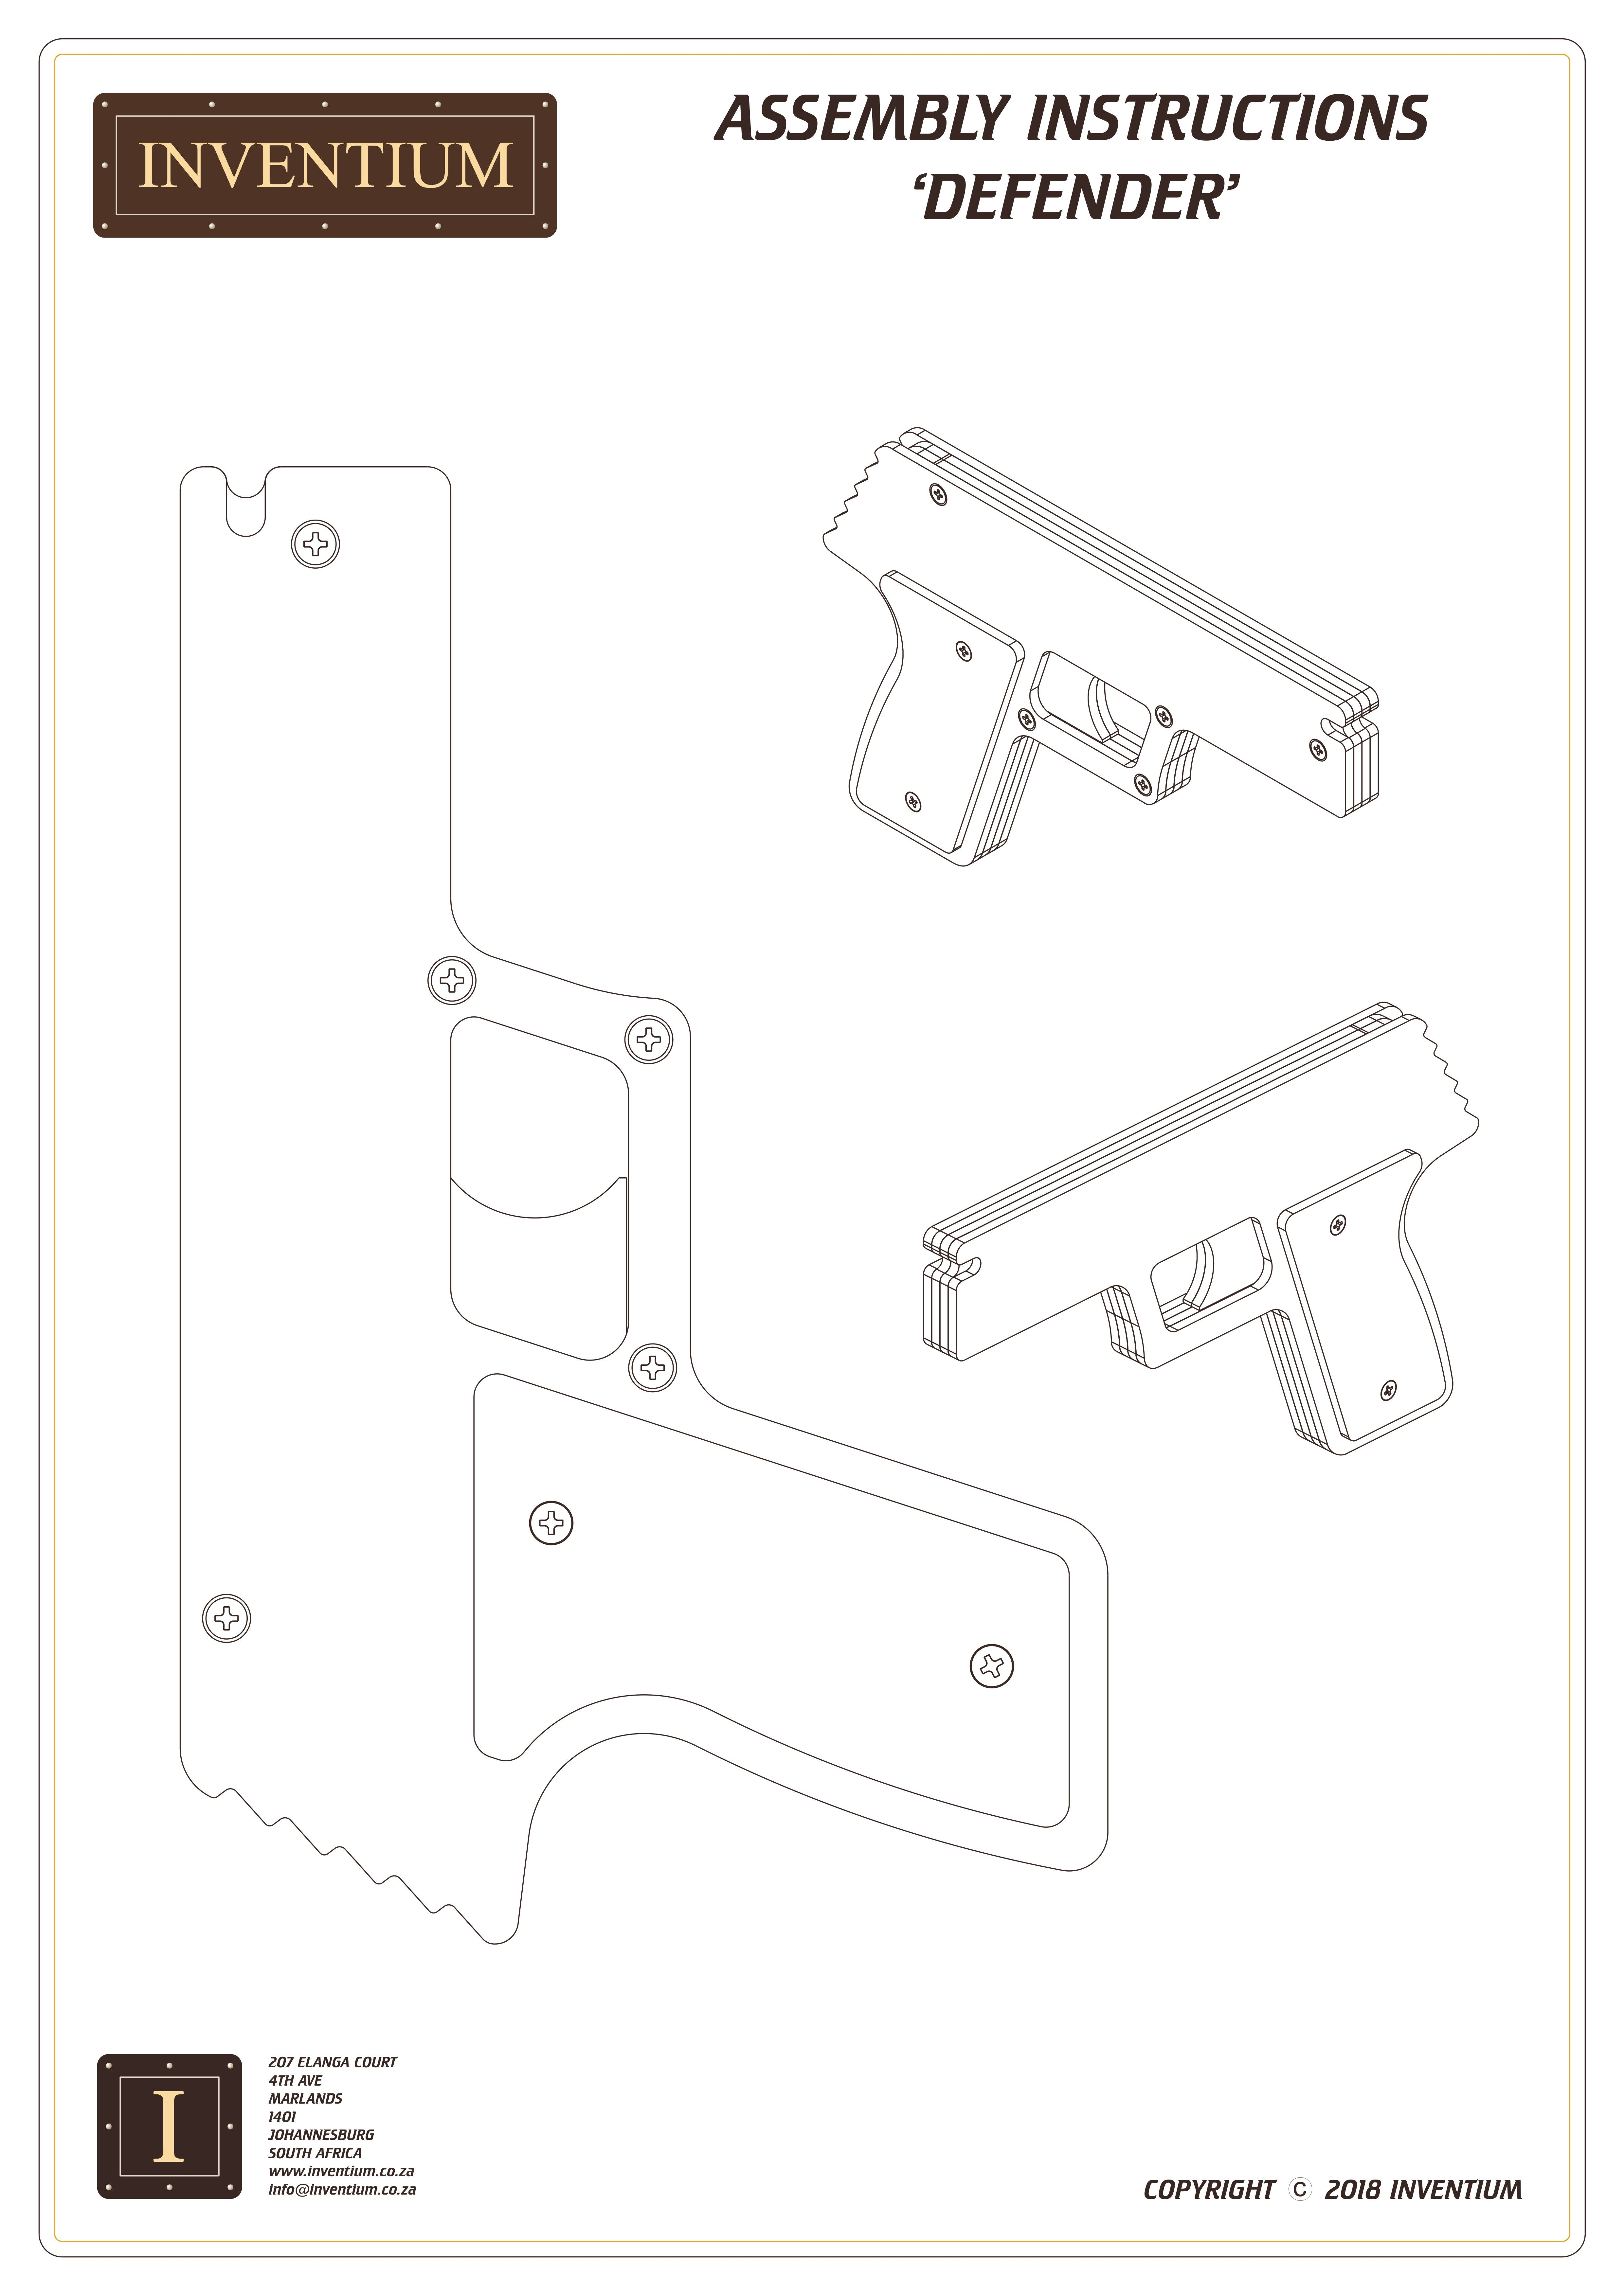 Front page of the 'Defender' assembly instructions. Views